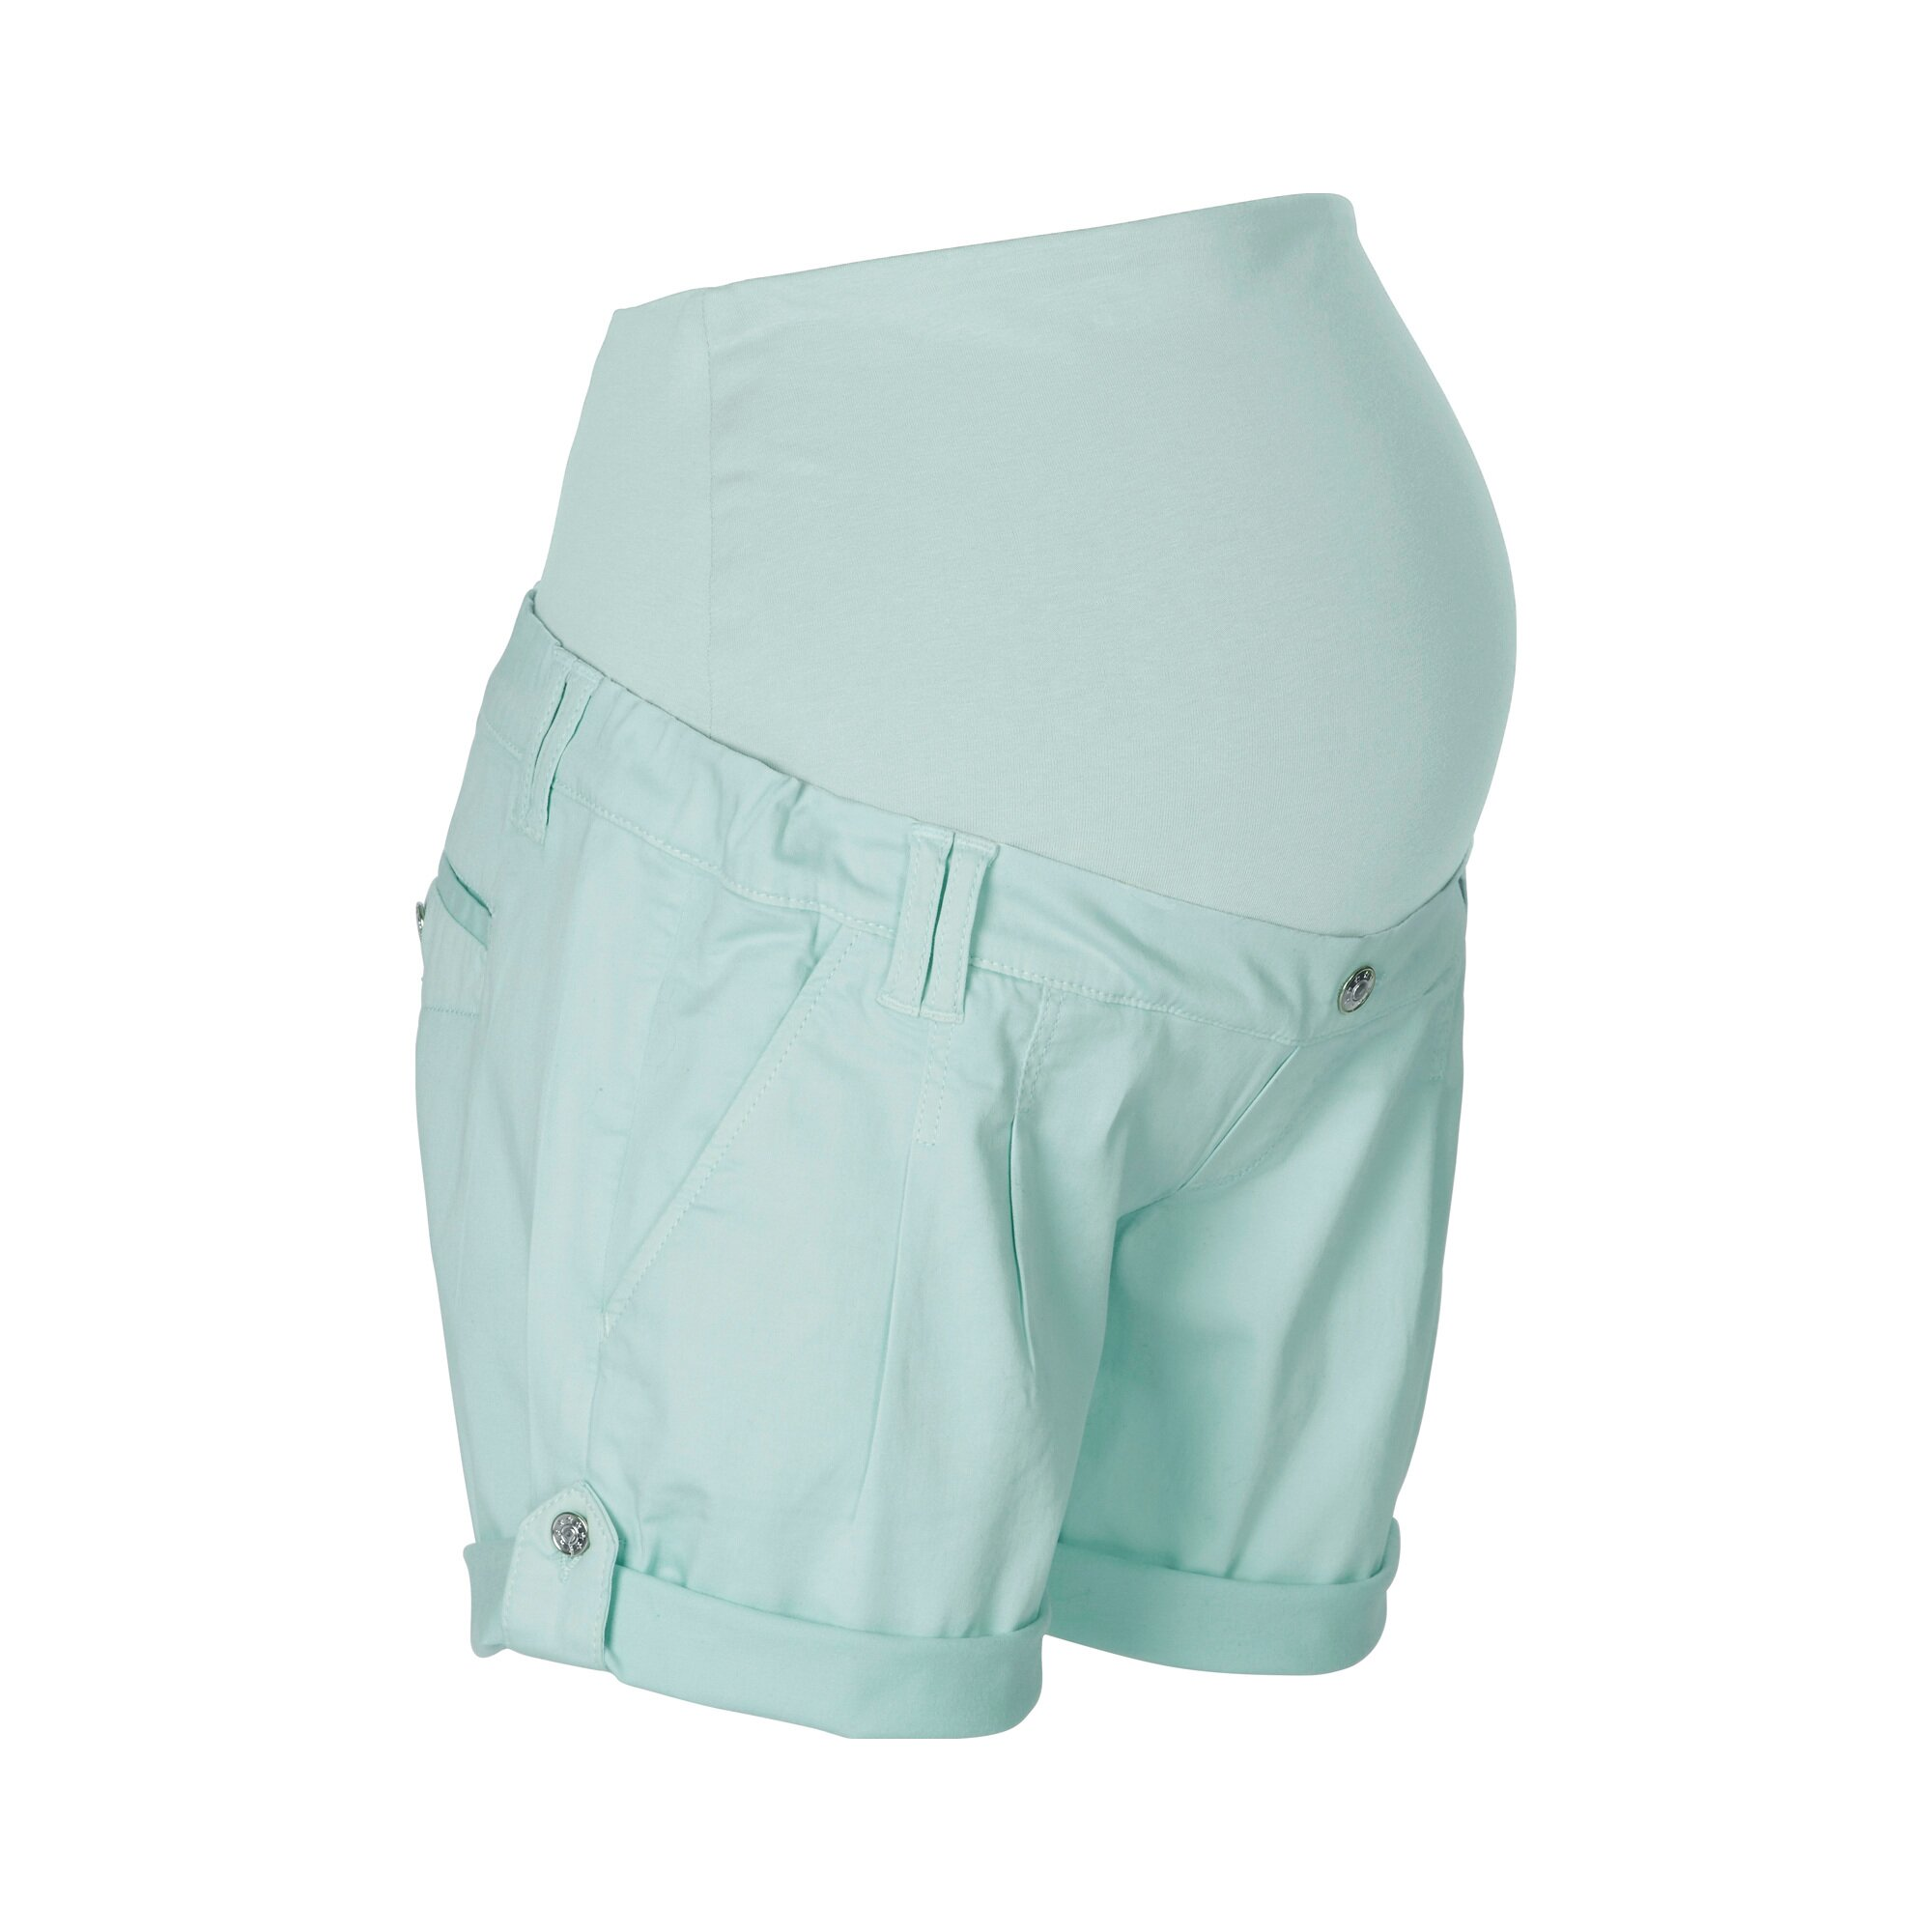 2hearts-umstands-shorts